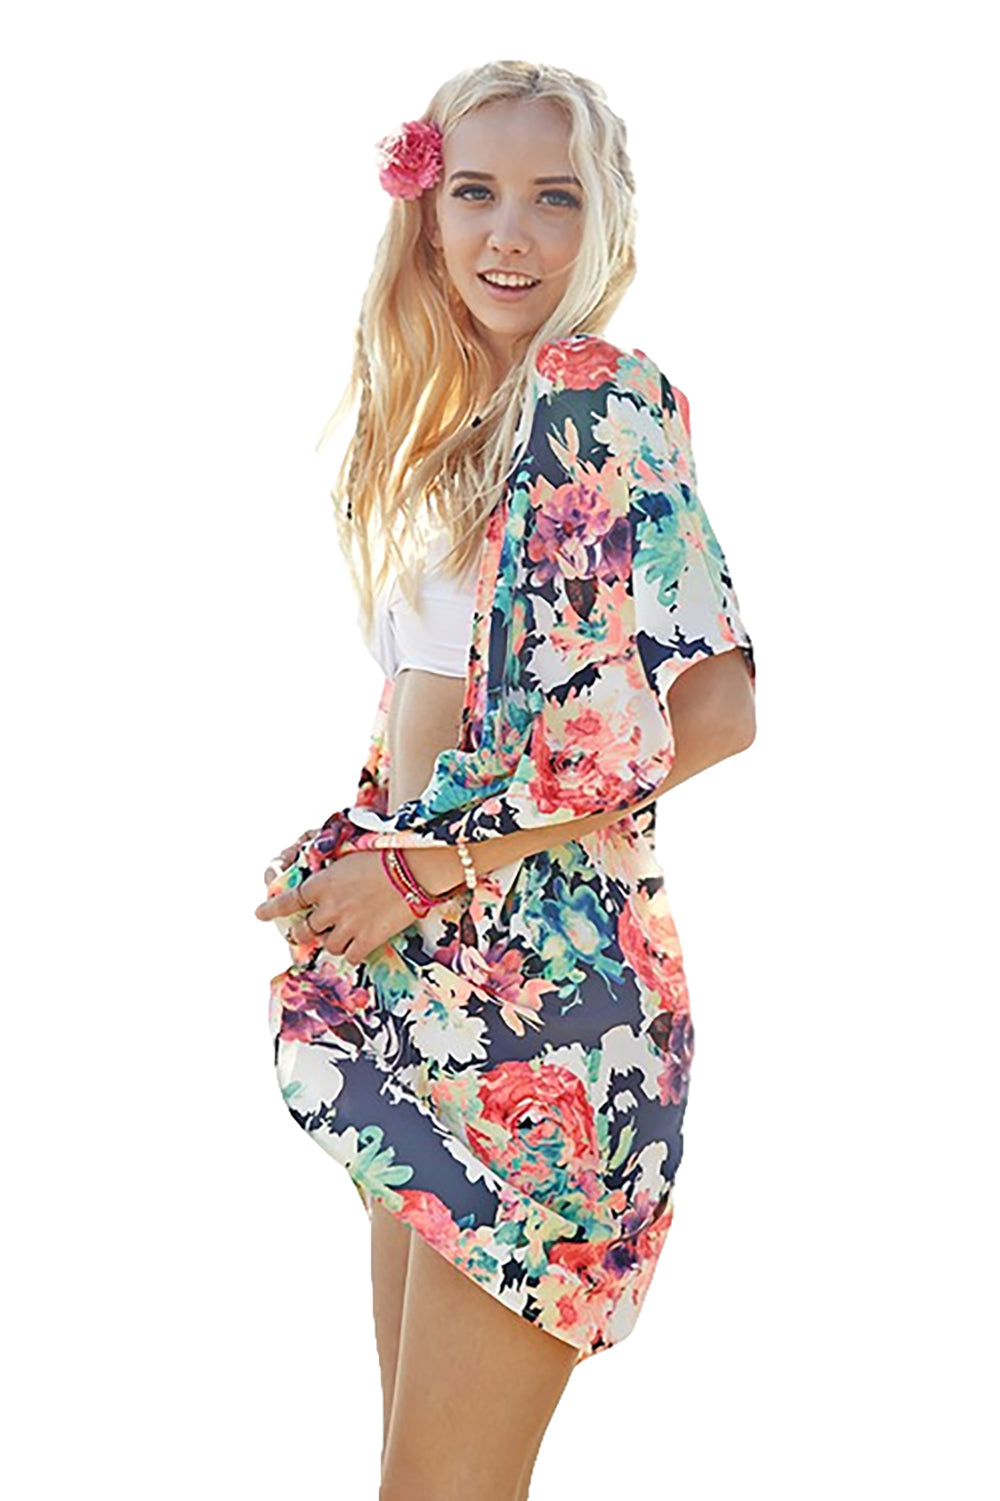 Women's Junior's Floral Boho Hippie Music Festival Kimono Cardigan Blouse Top - Fest Threads